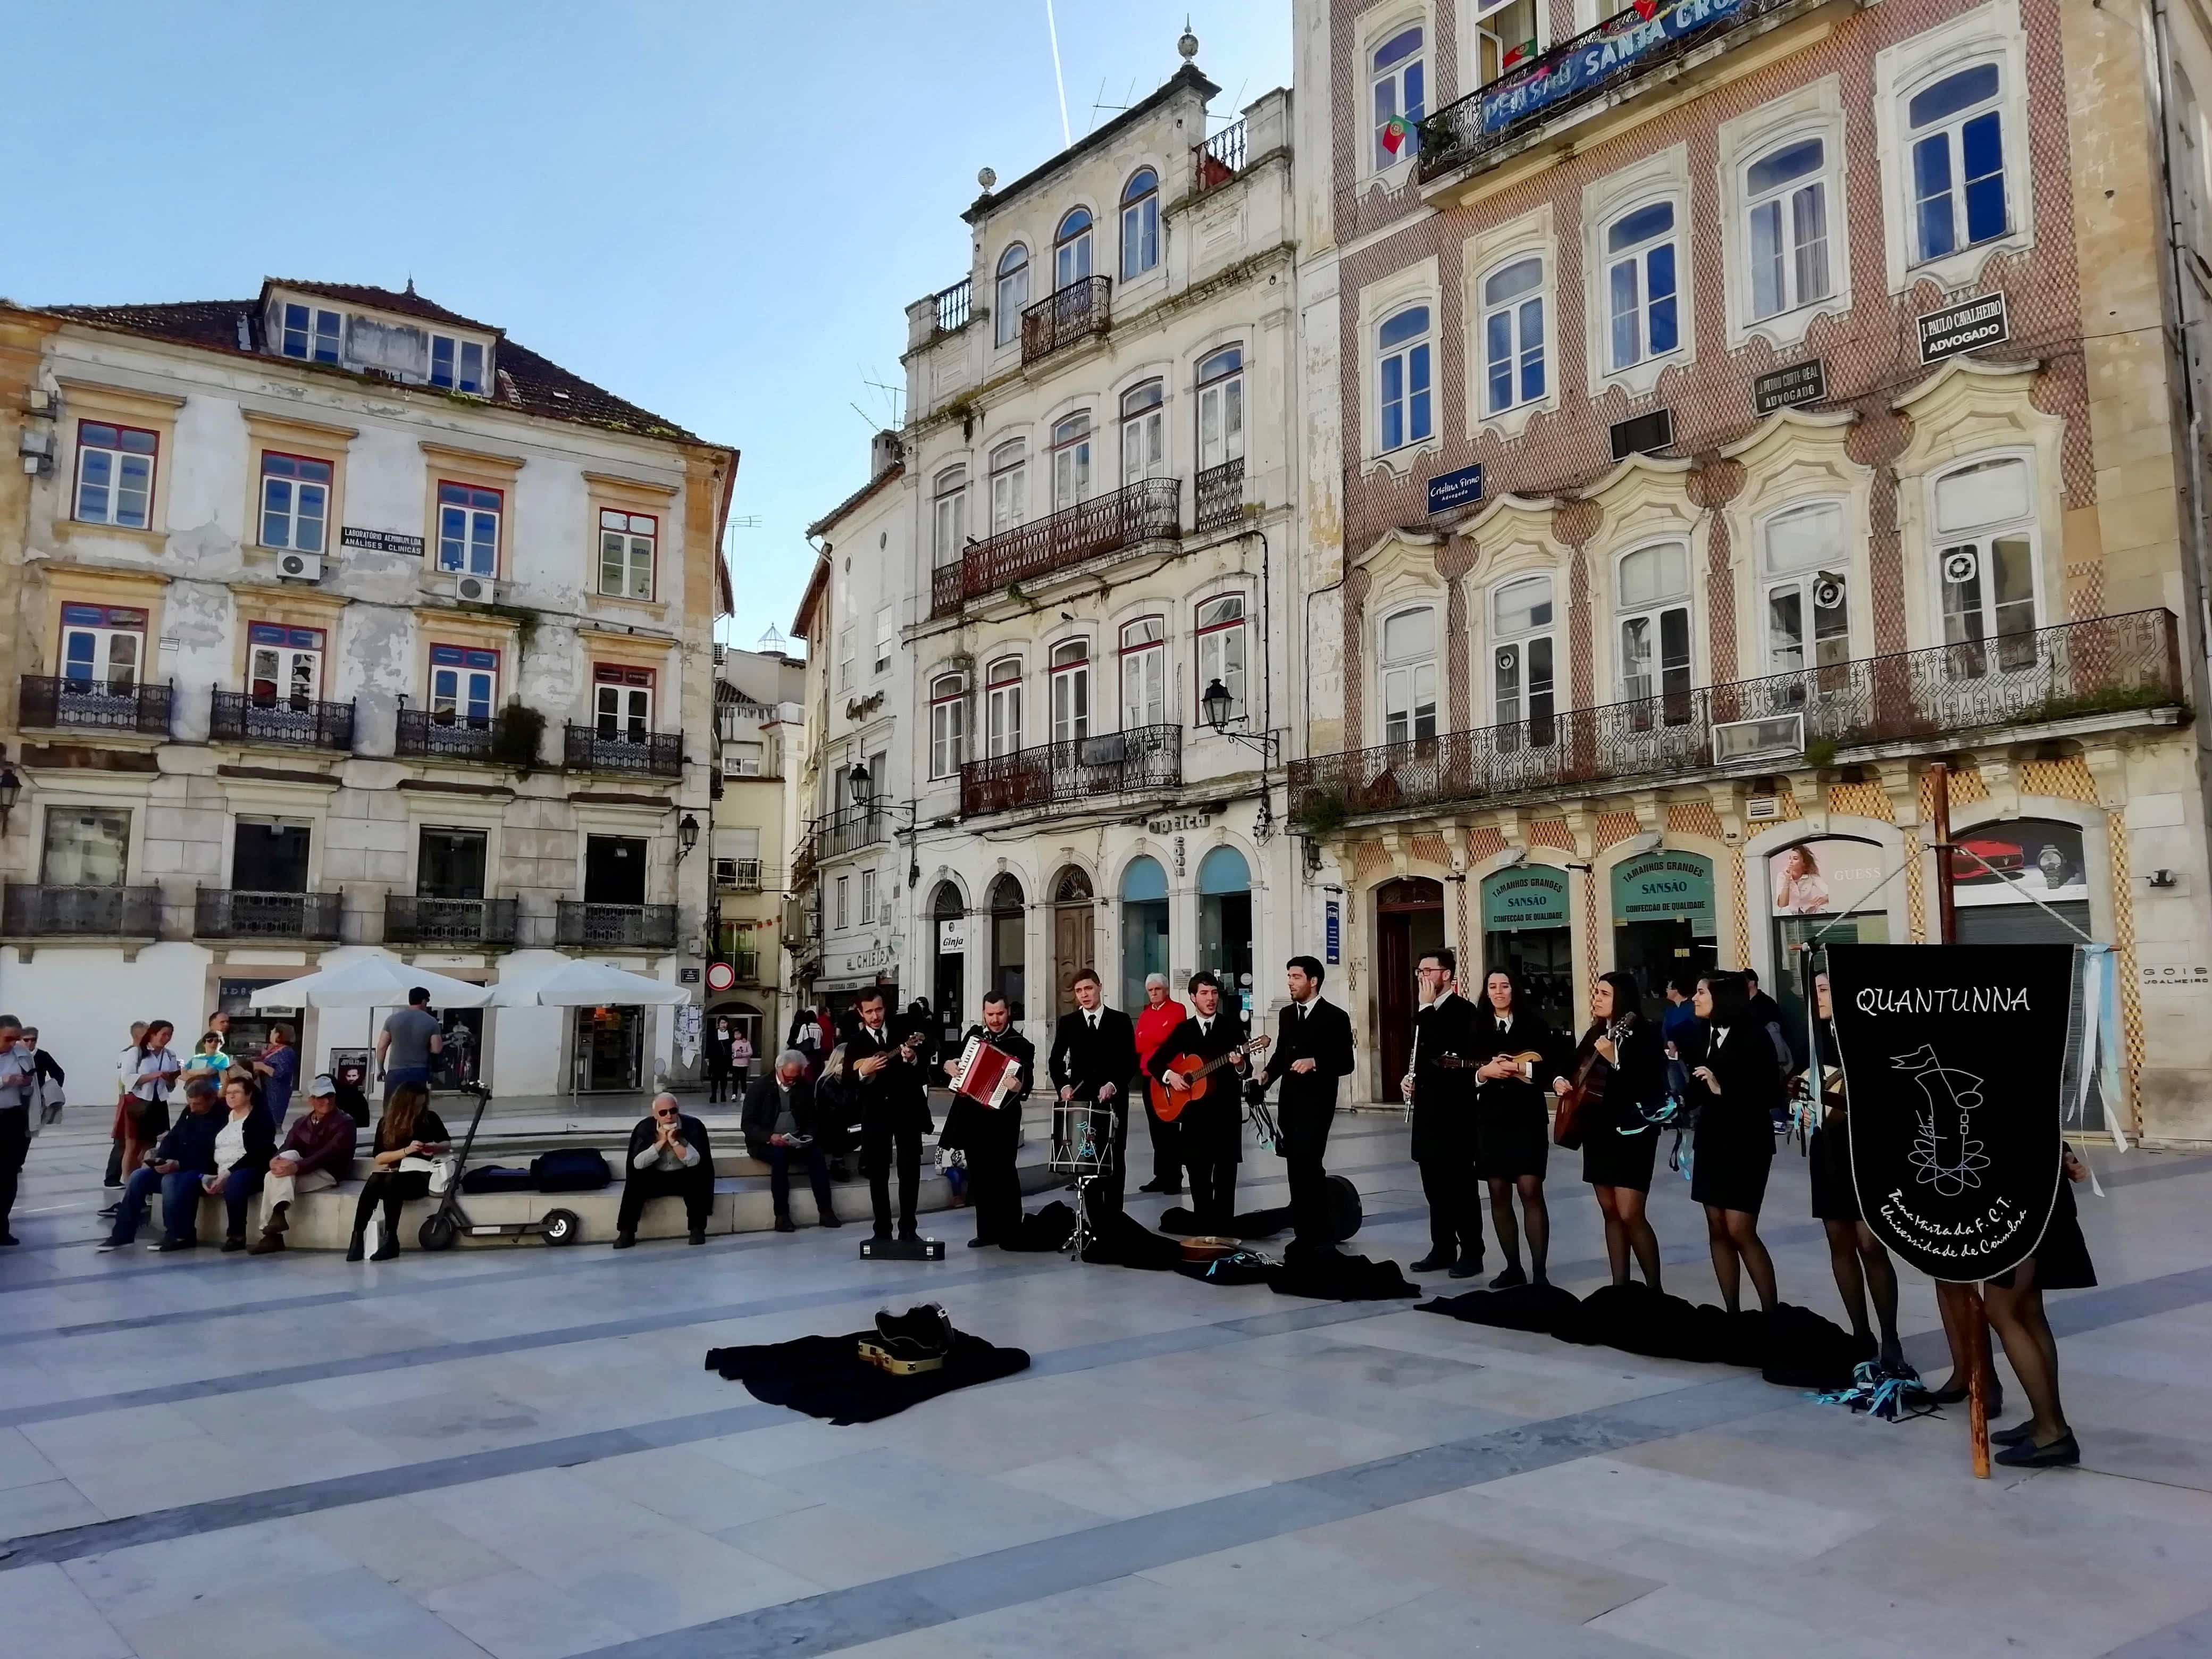 University students busking in Coimbra